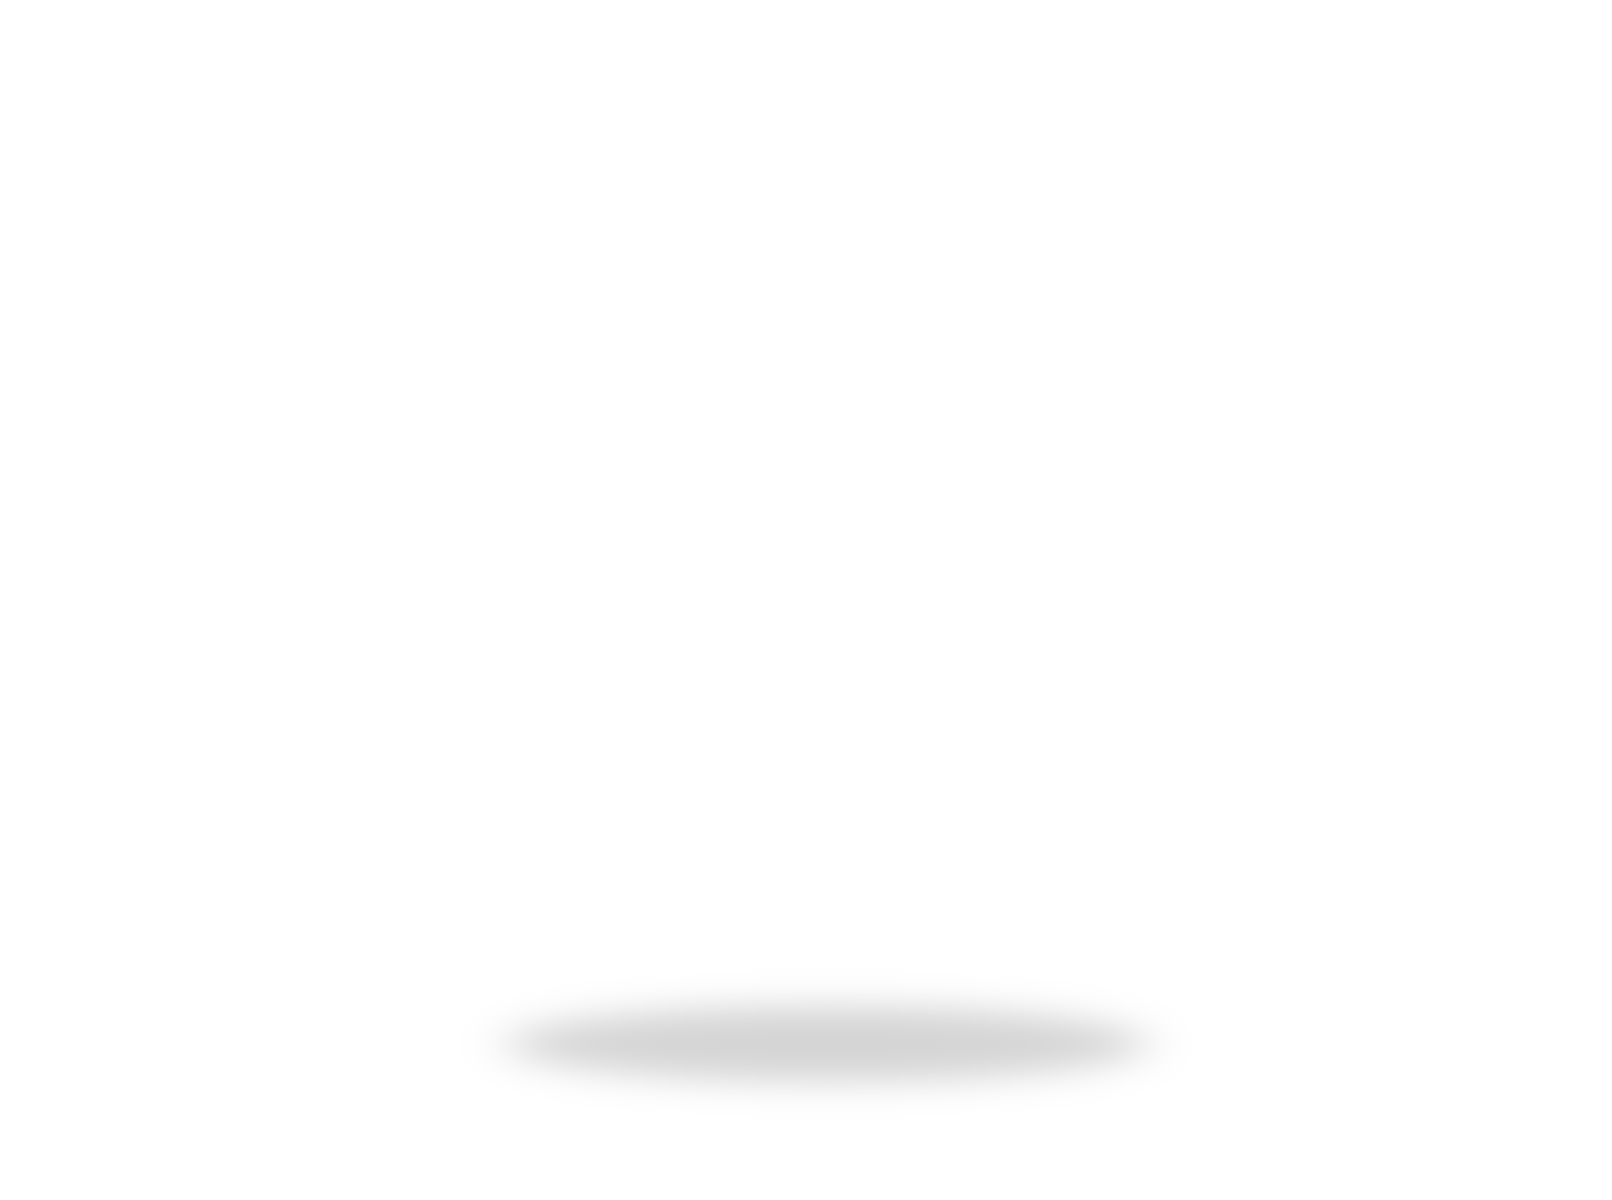 zettit-logo-after-intro-2020-1-2